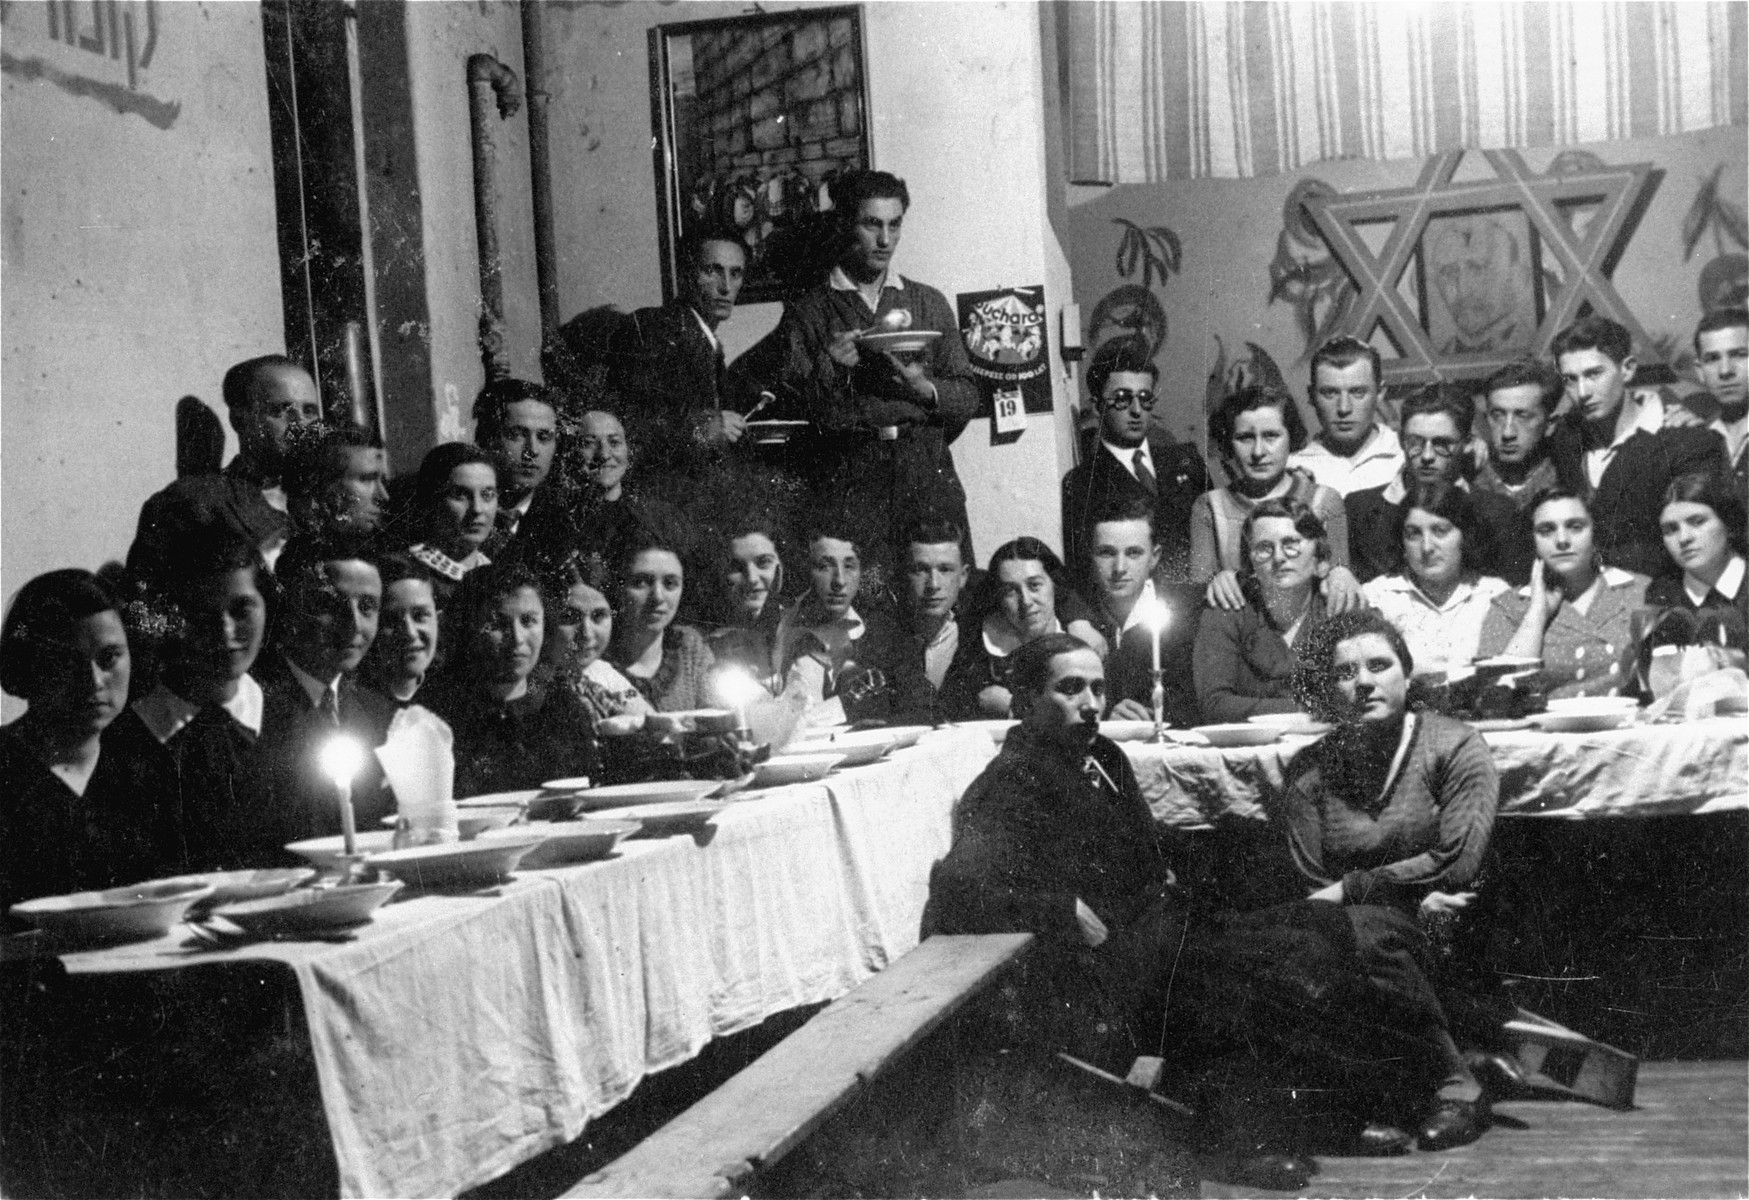 Group portrait of members of a hachshara, a Zionist youth collective, at a banquet in Katowice.